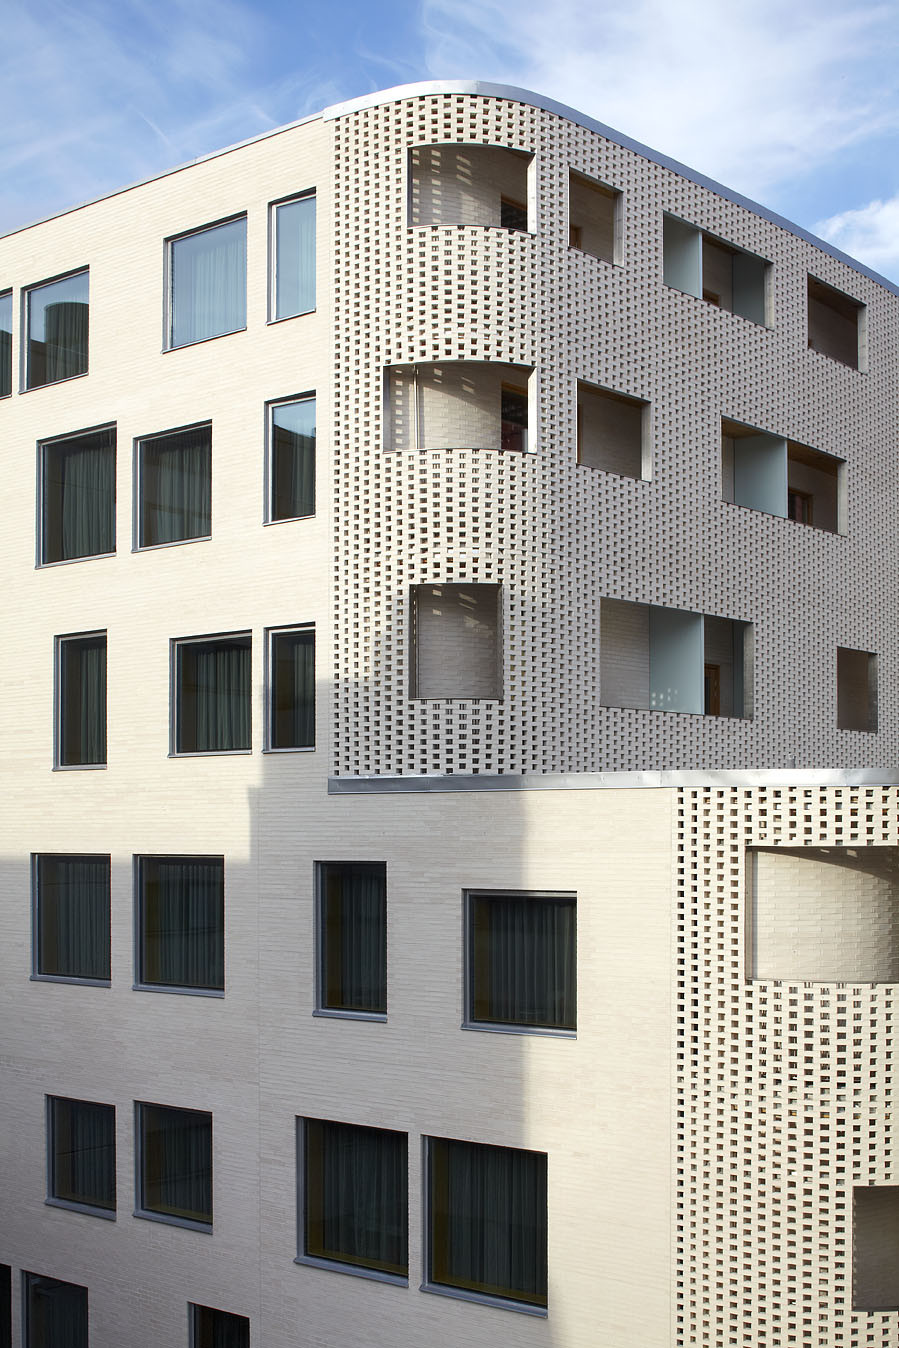 Paasitorni hotel k2s architects archdaily for Brick facade house